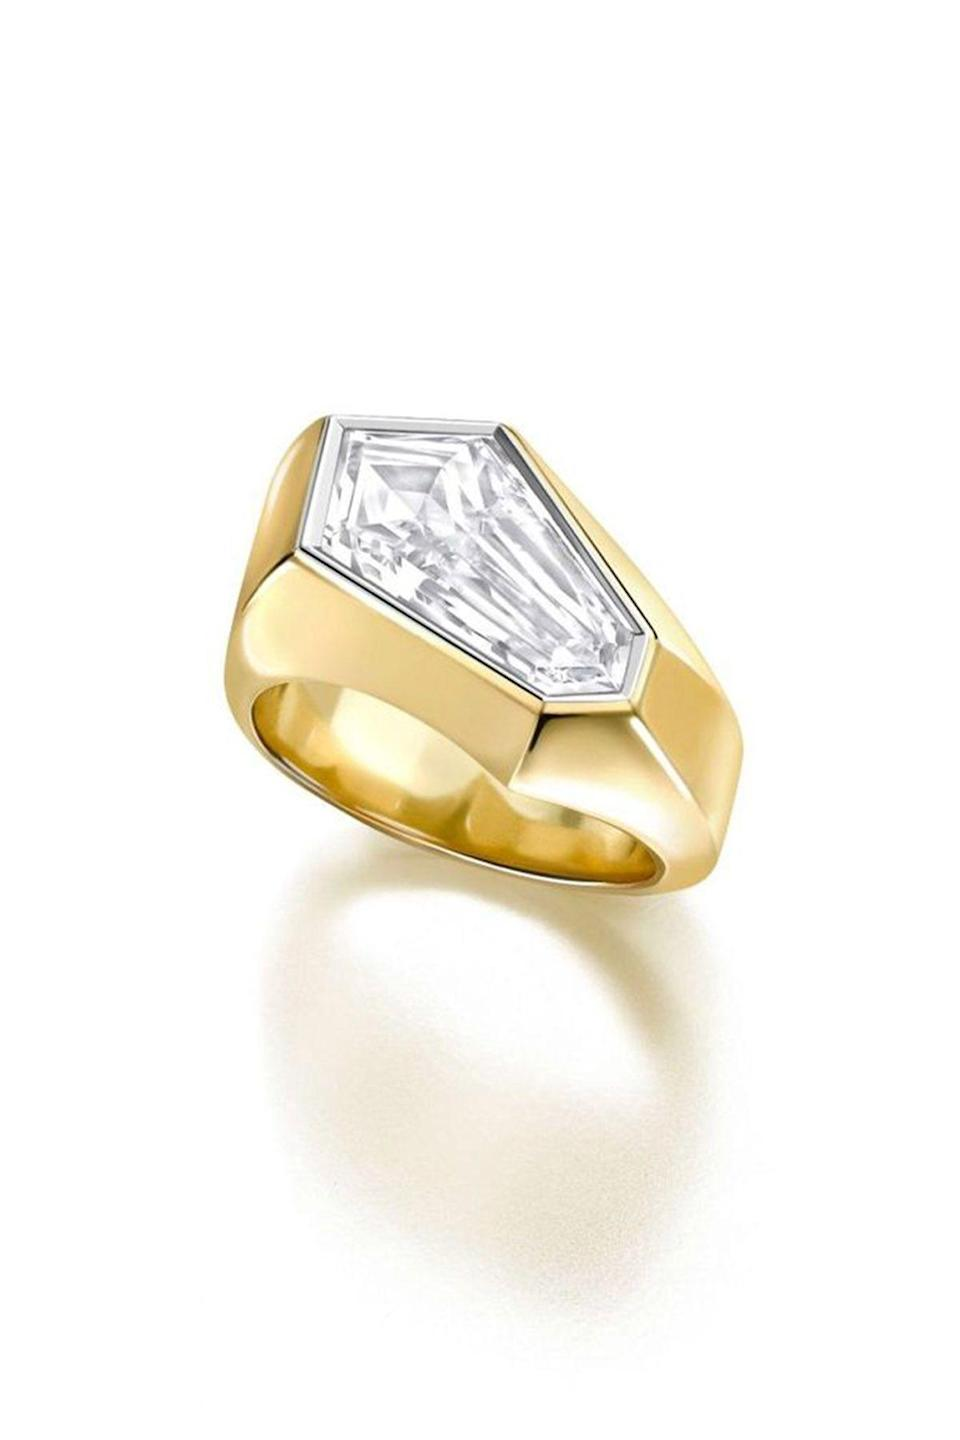 """<p><strong>Jessica McCormack</strong></p><p>jessicamccormack.com</p><p><a href=""""https://www.jessicamccormack.com/bridal/engagement-rings/diamond-kite-ring"""" rel=""""nofollow noopener"""" target=""""_blank"""" data-ylk=""""slk:Shop Now"""" class=""""link rapid-noclick-resp"""">Shop Now</a></p><p>For the alternative bride, Jessica McCormack created a geometric piece so stunning one won't even need a wedding band.</p>"""